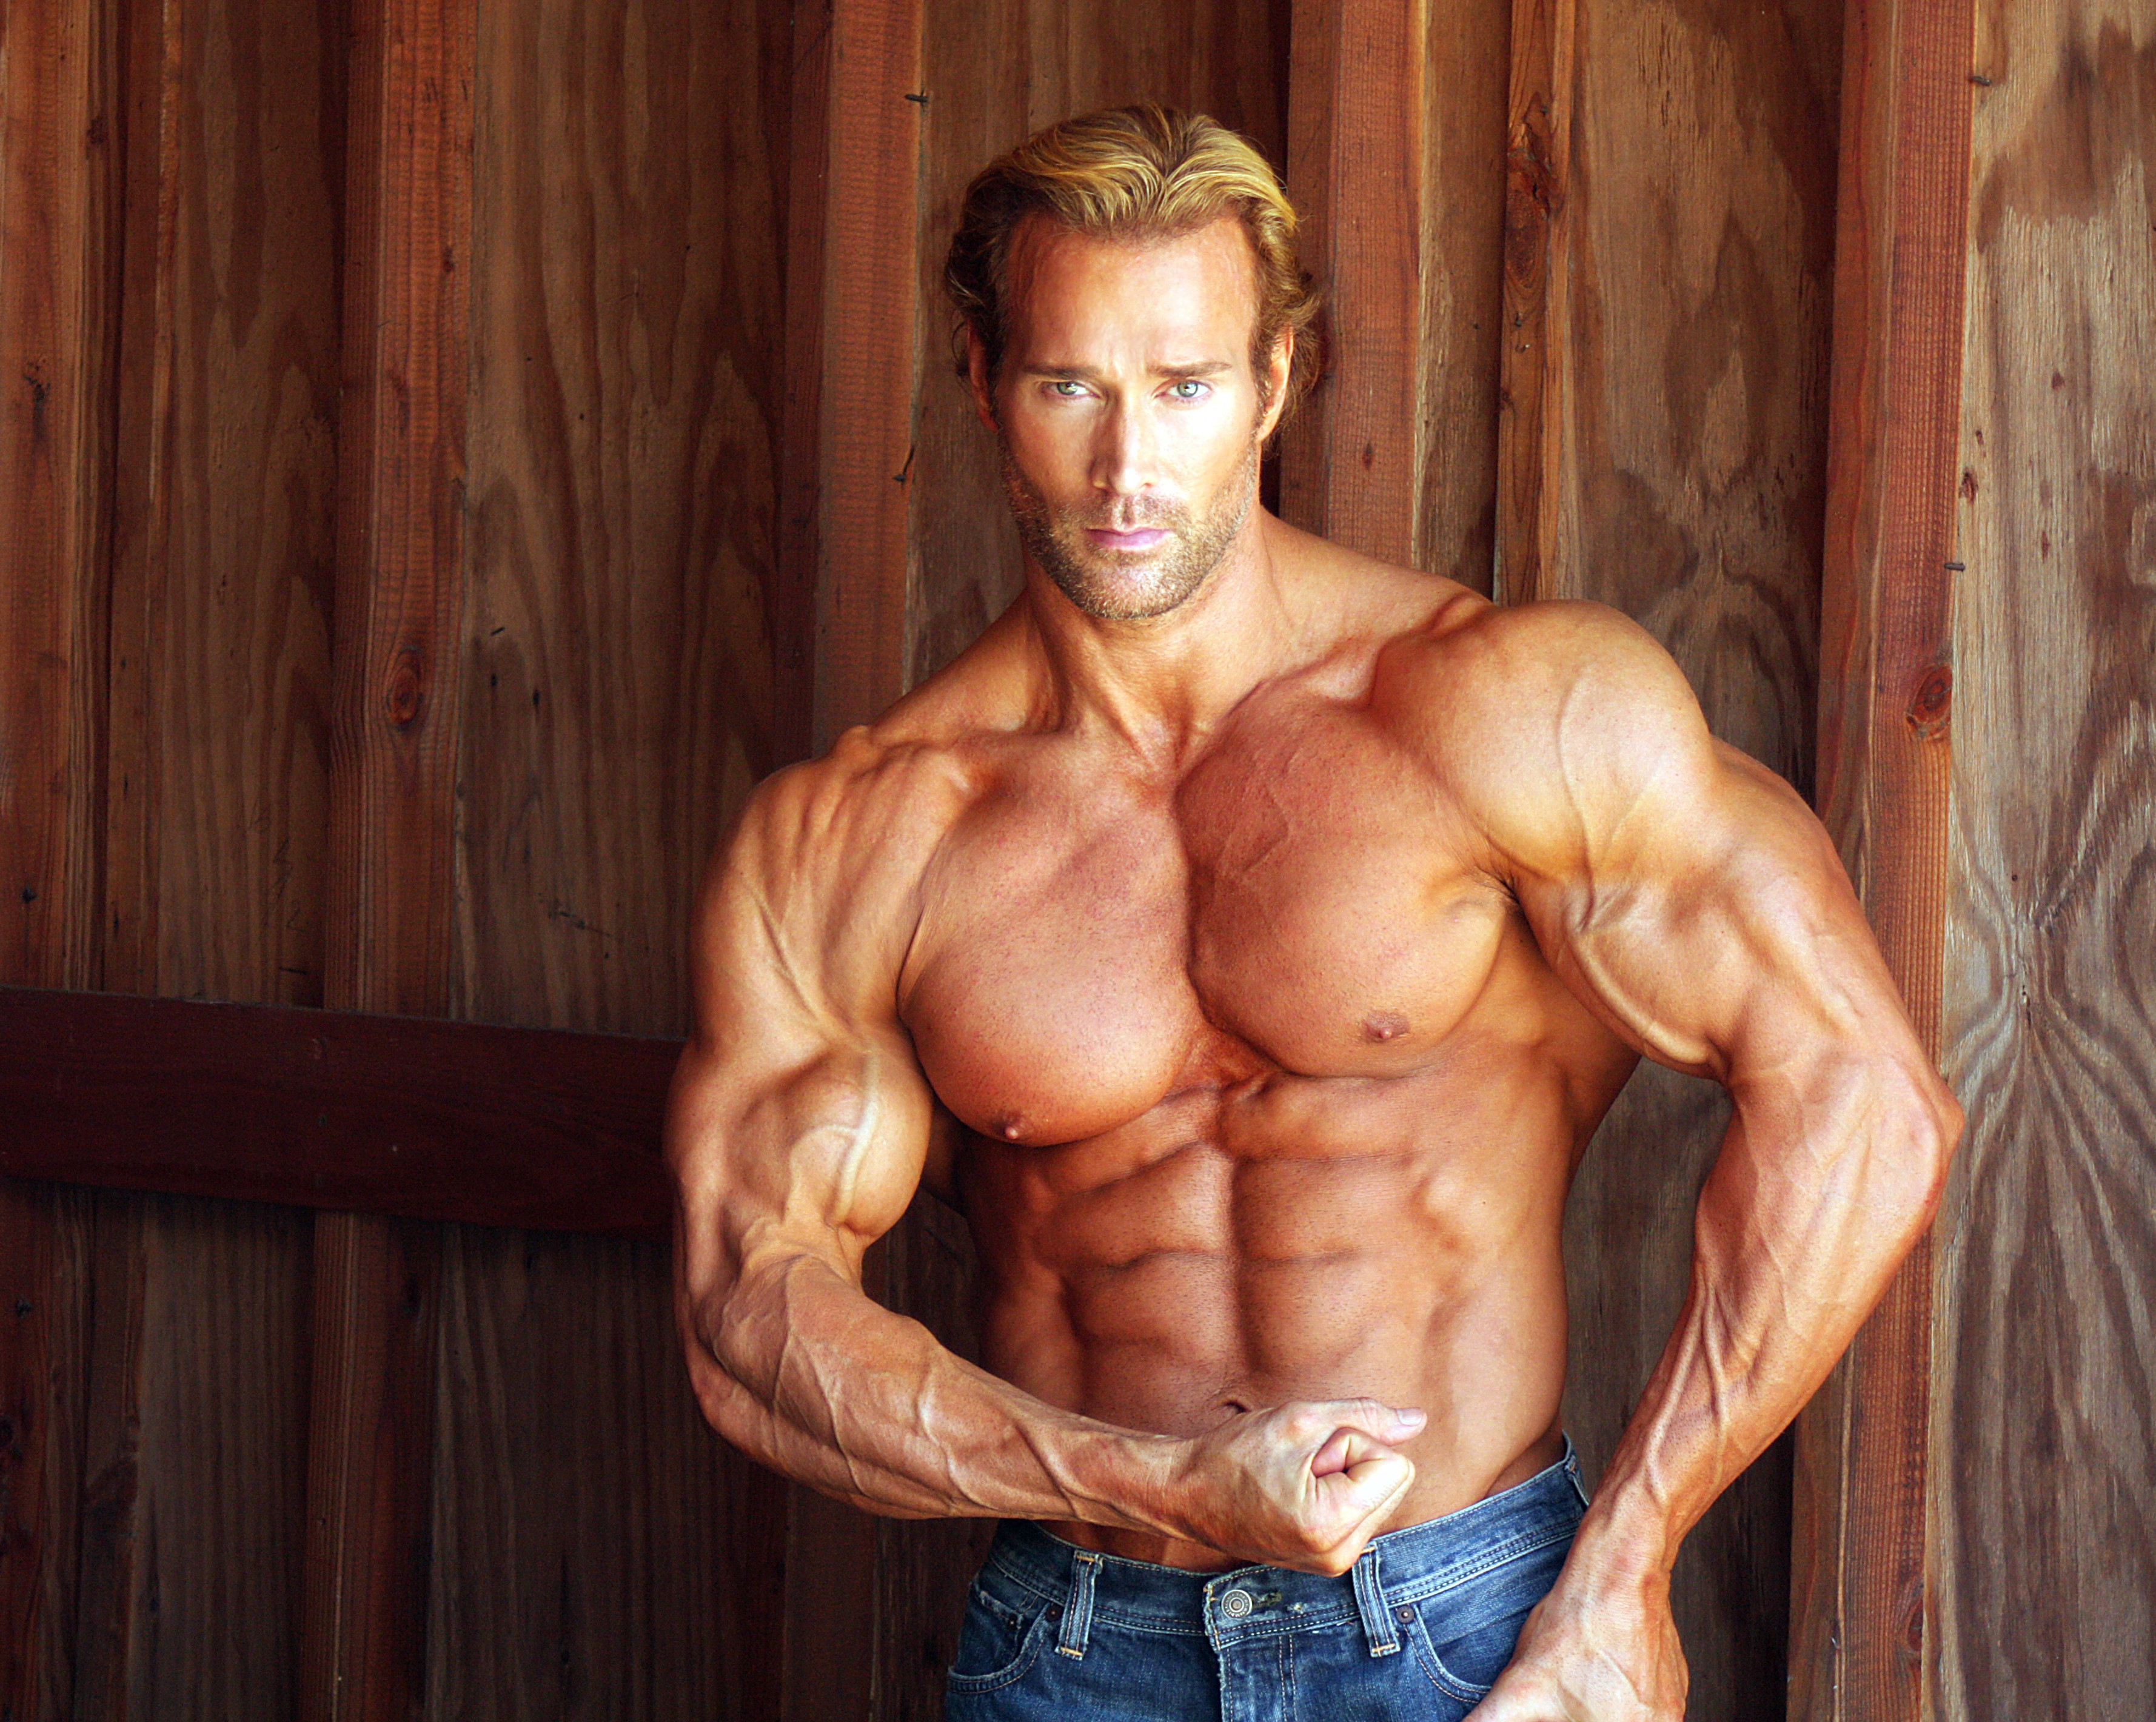 Mike O'hearn claims 21 inch arms natty - Bodybuilding.com